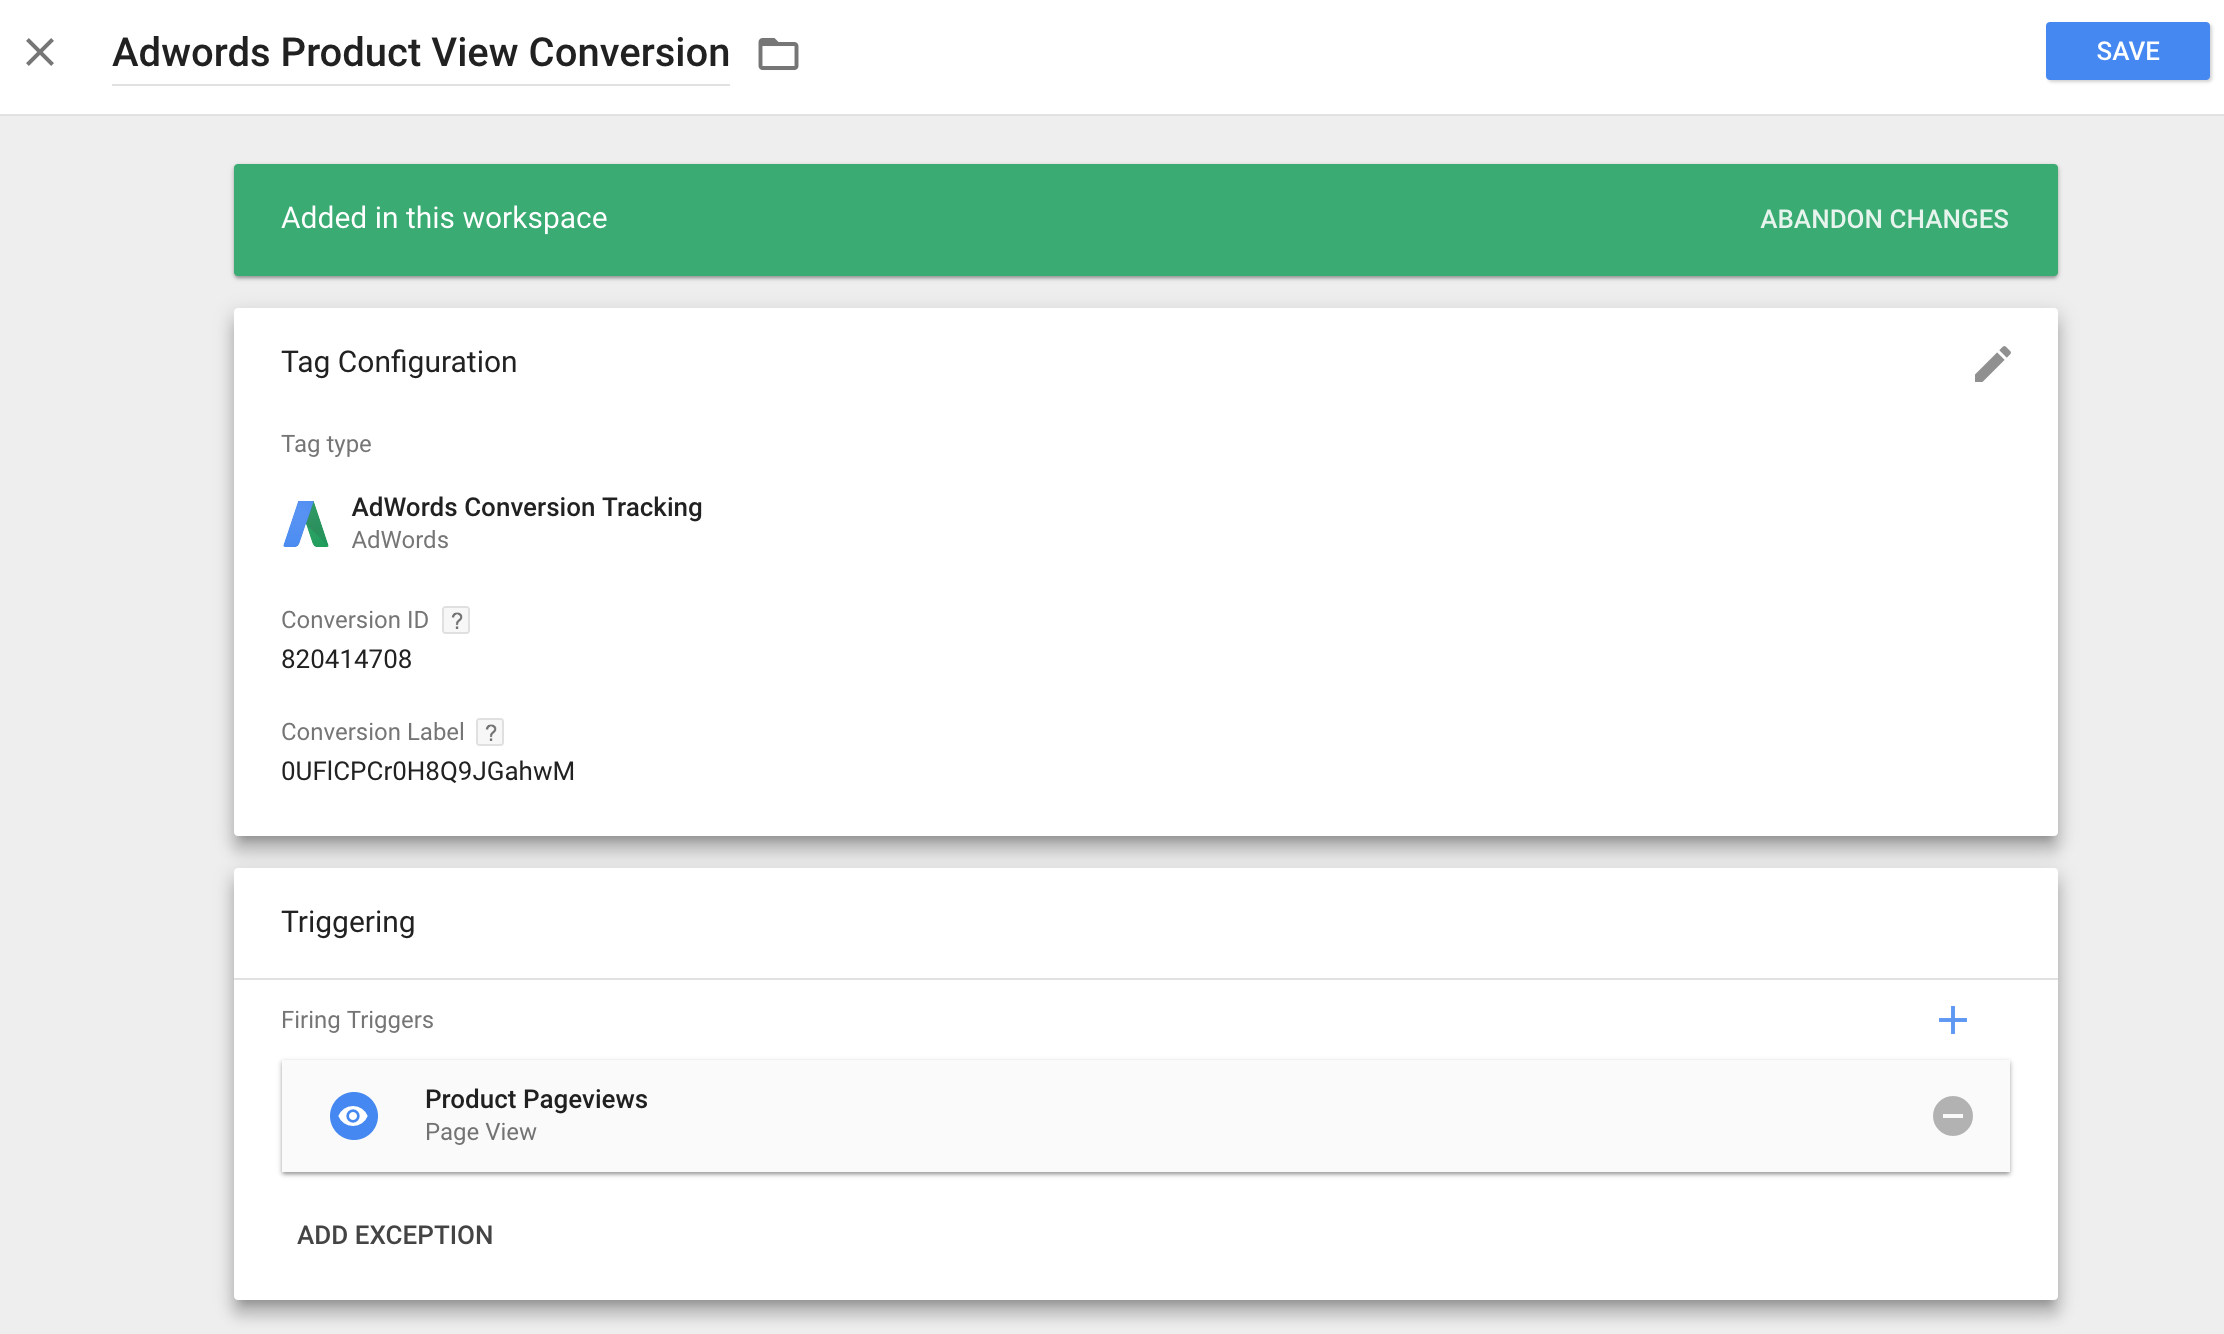 adwords gtm conversion for product views